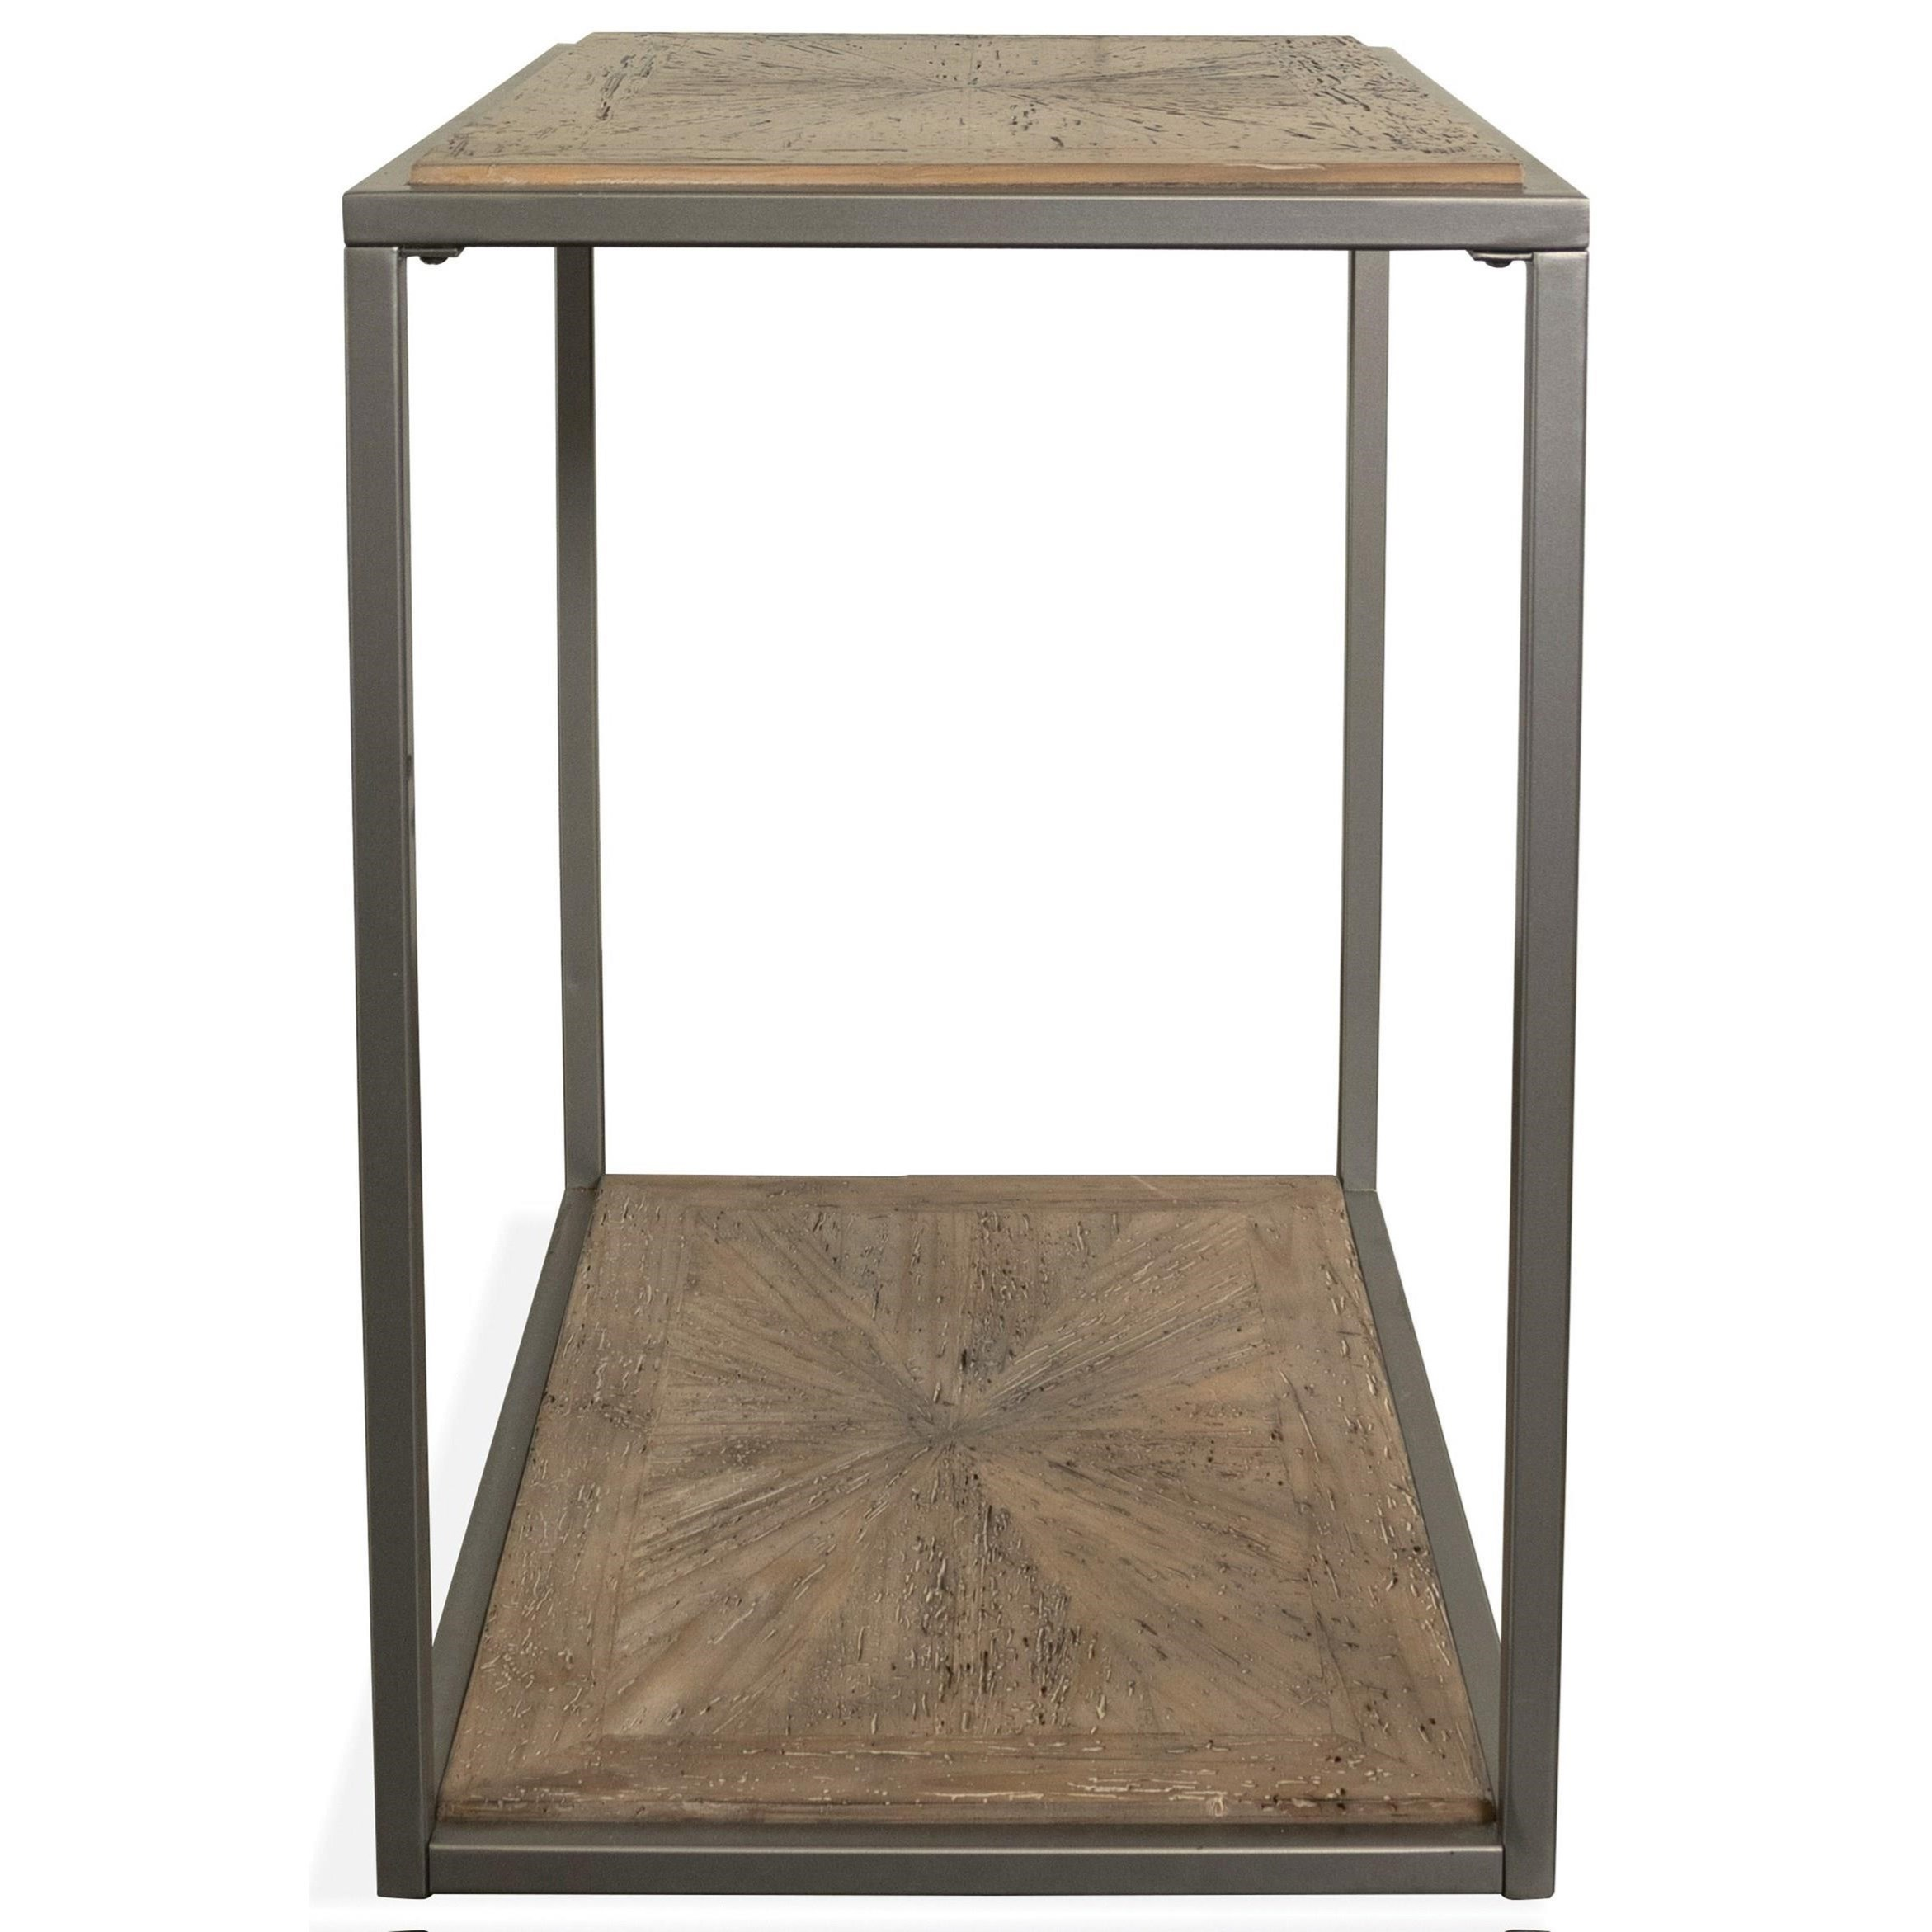 Coronado Rectangle Chairside Table by Riverside Furniture at Wilson's Furniture